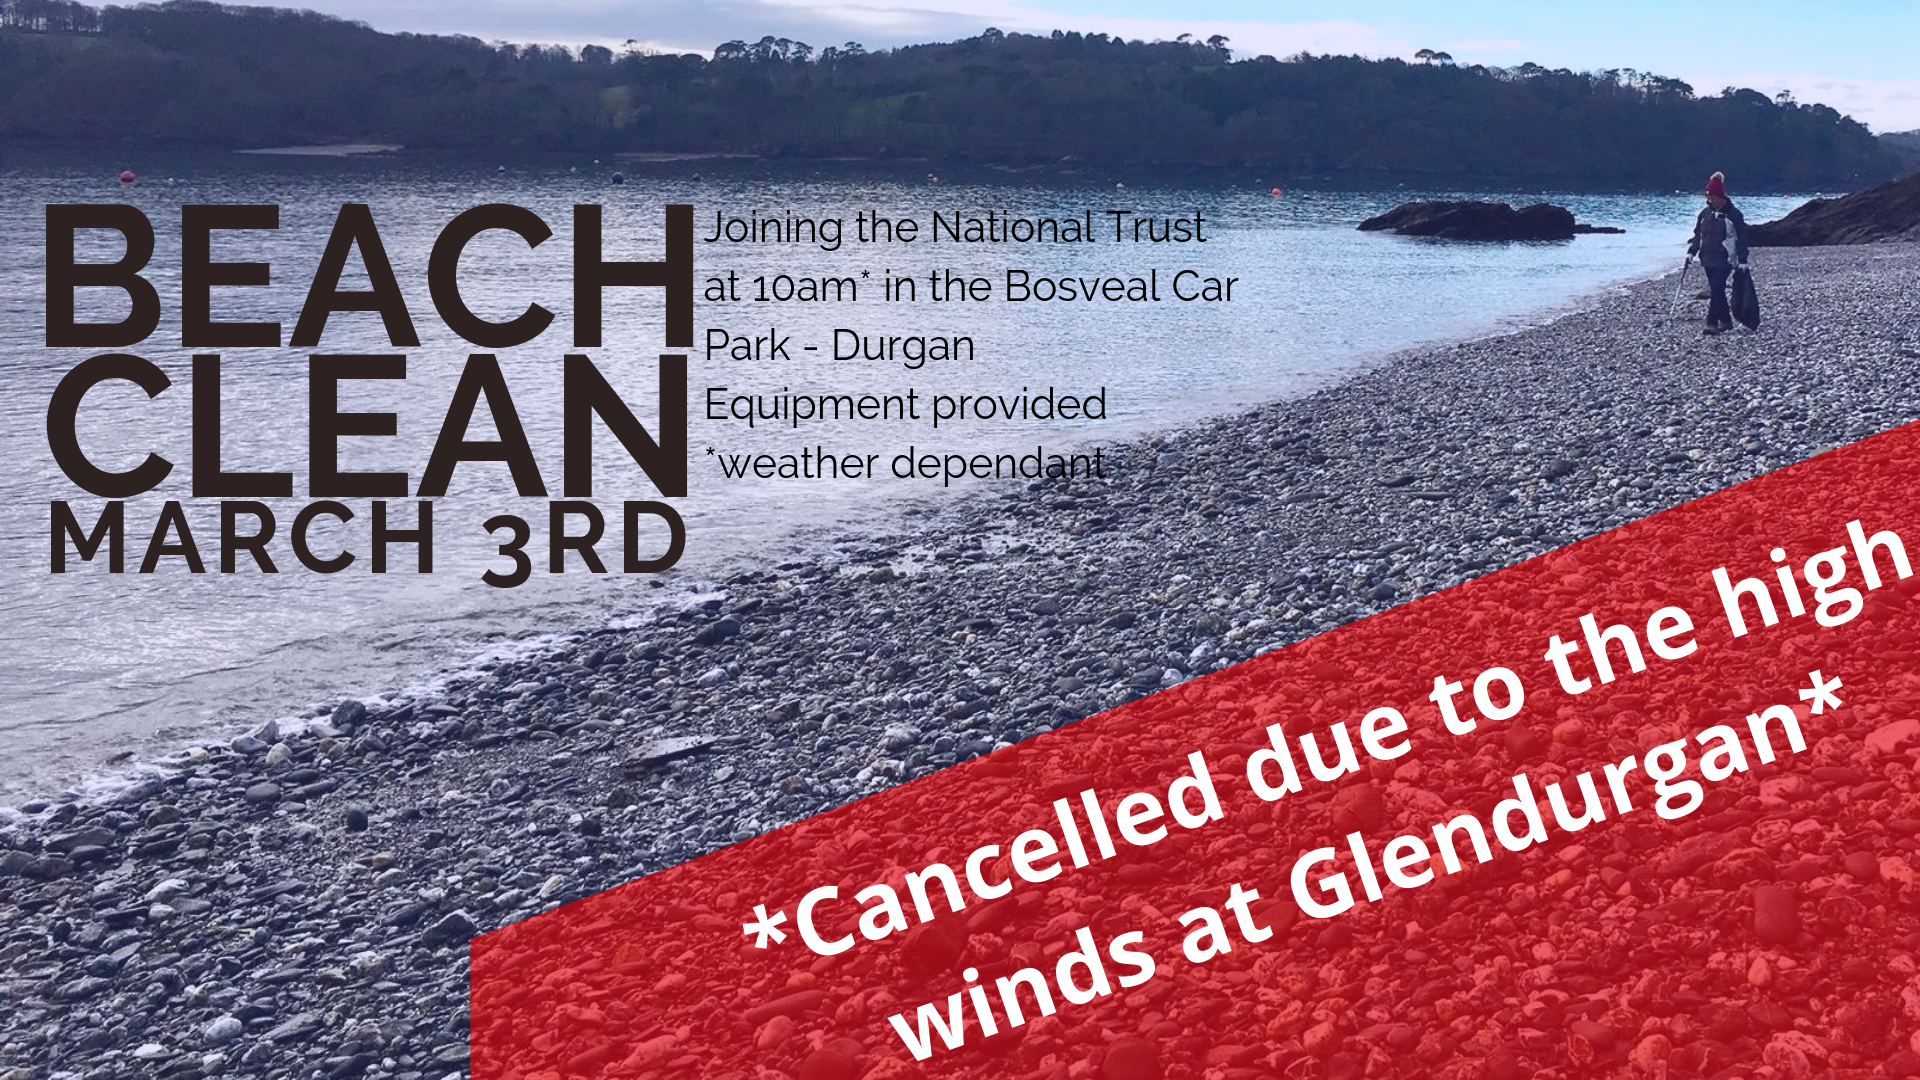 Glendurgan Beach Clean Cancelled